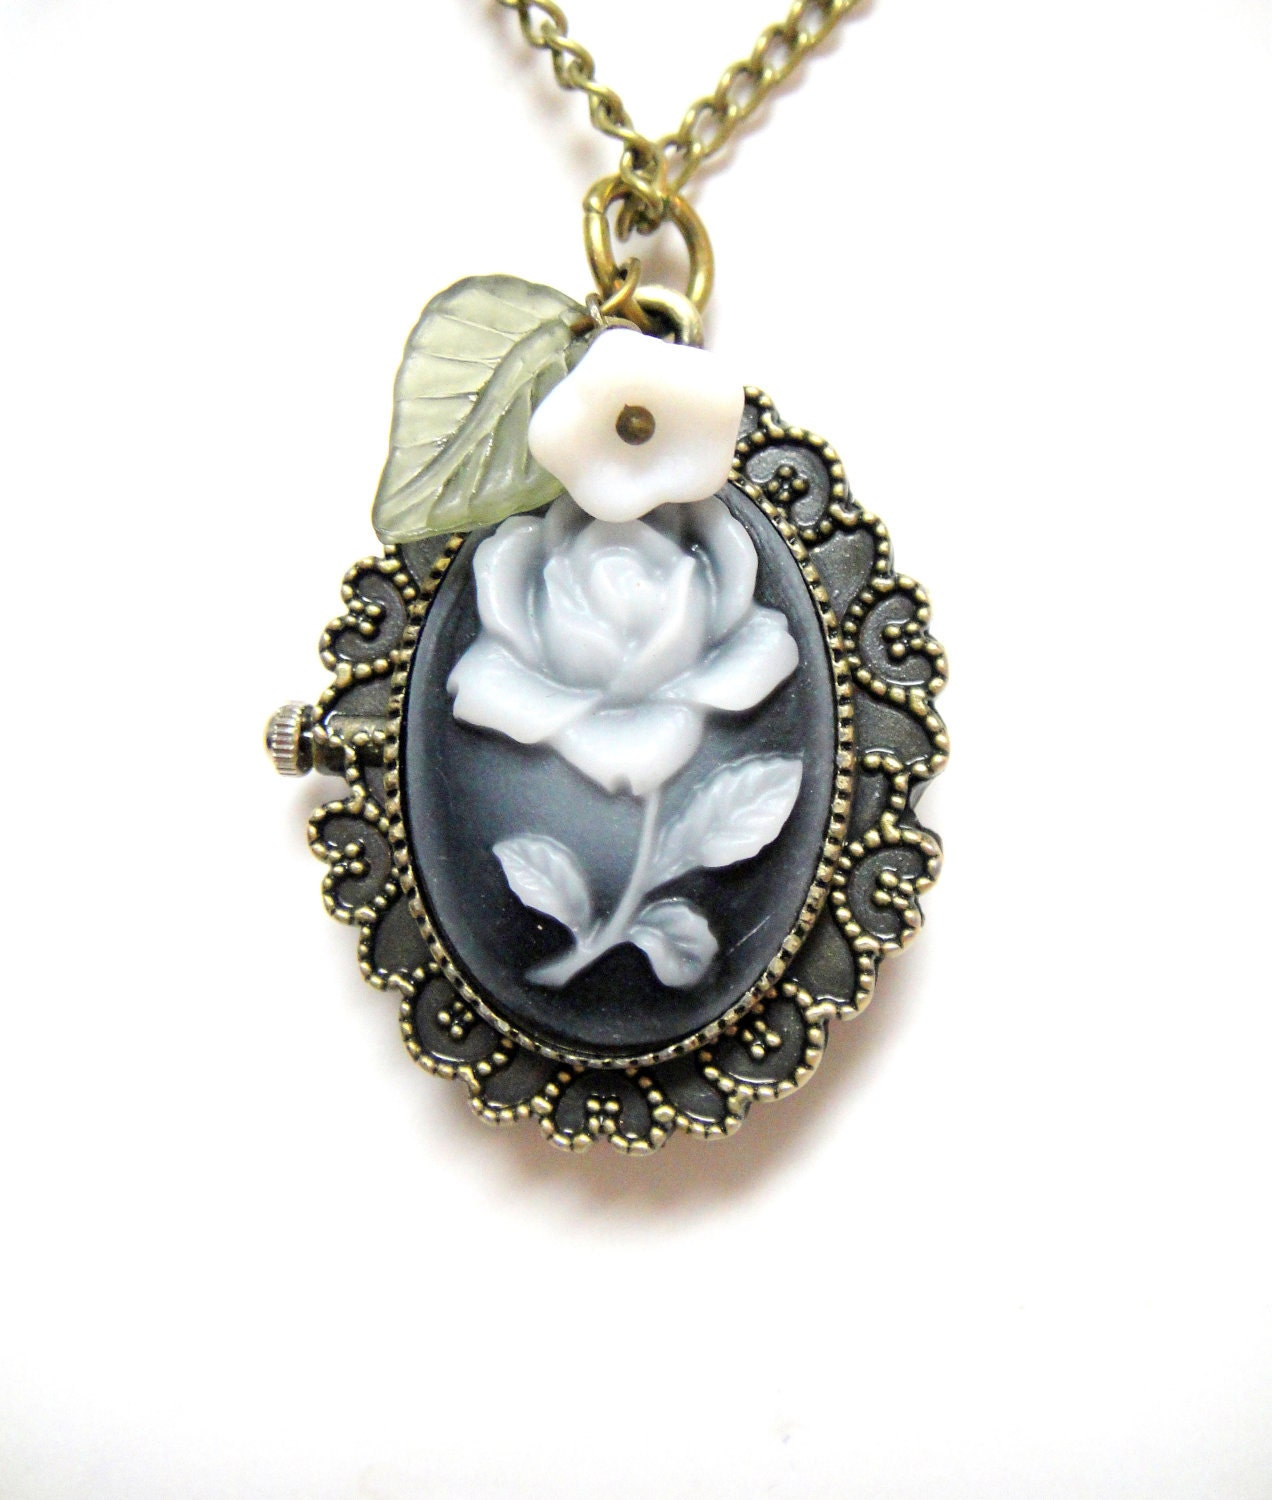 Flower Pocket Watch -  Blue Flower Watch, White Flower, Leaf Accent - Flower Necklace Pocket Watch